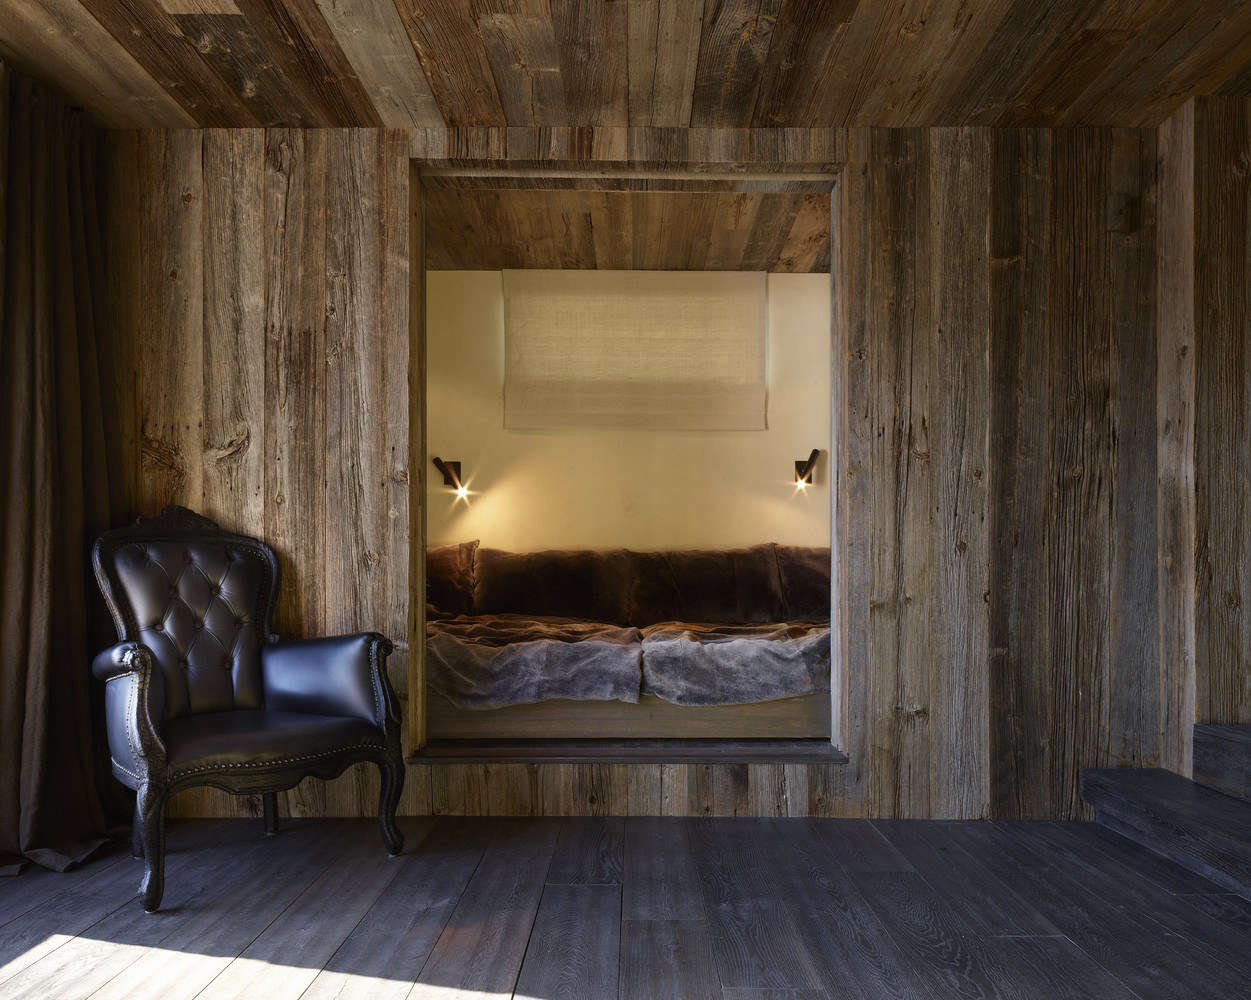 A bed carved into a wall.